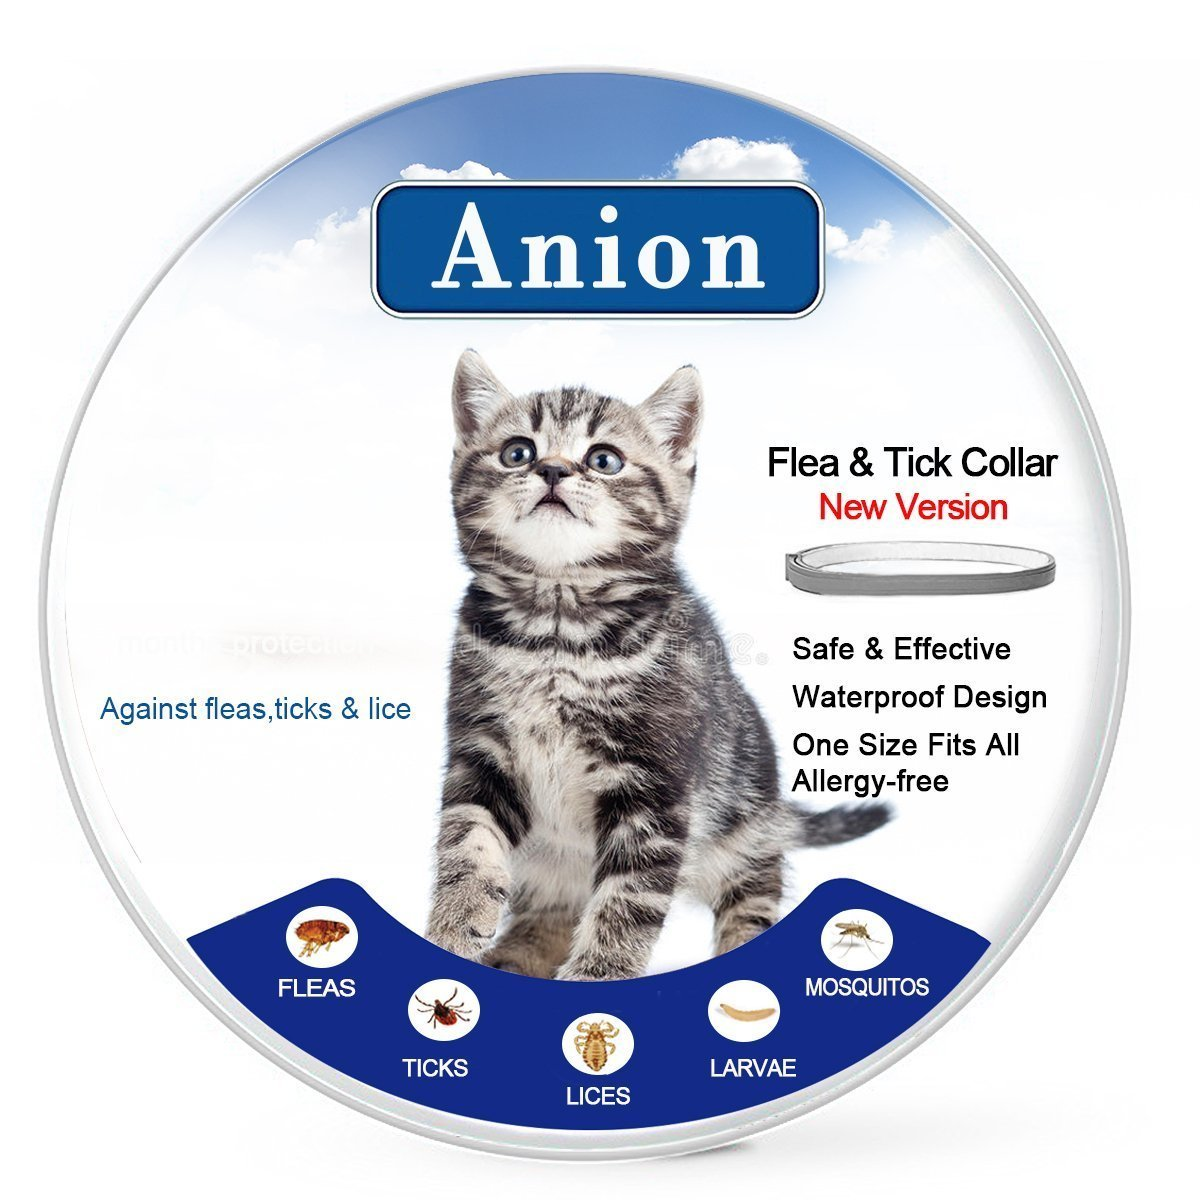 Best Flea Collar For Dogs And Cats